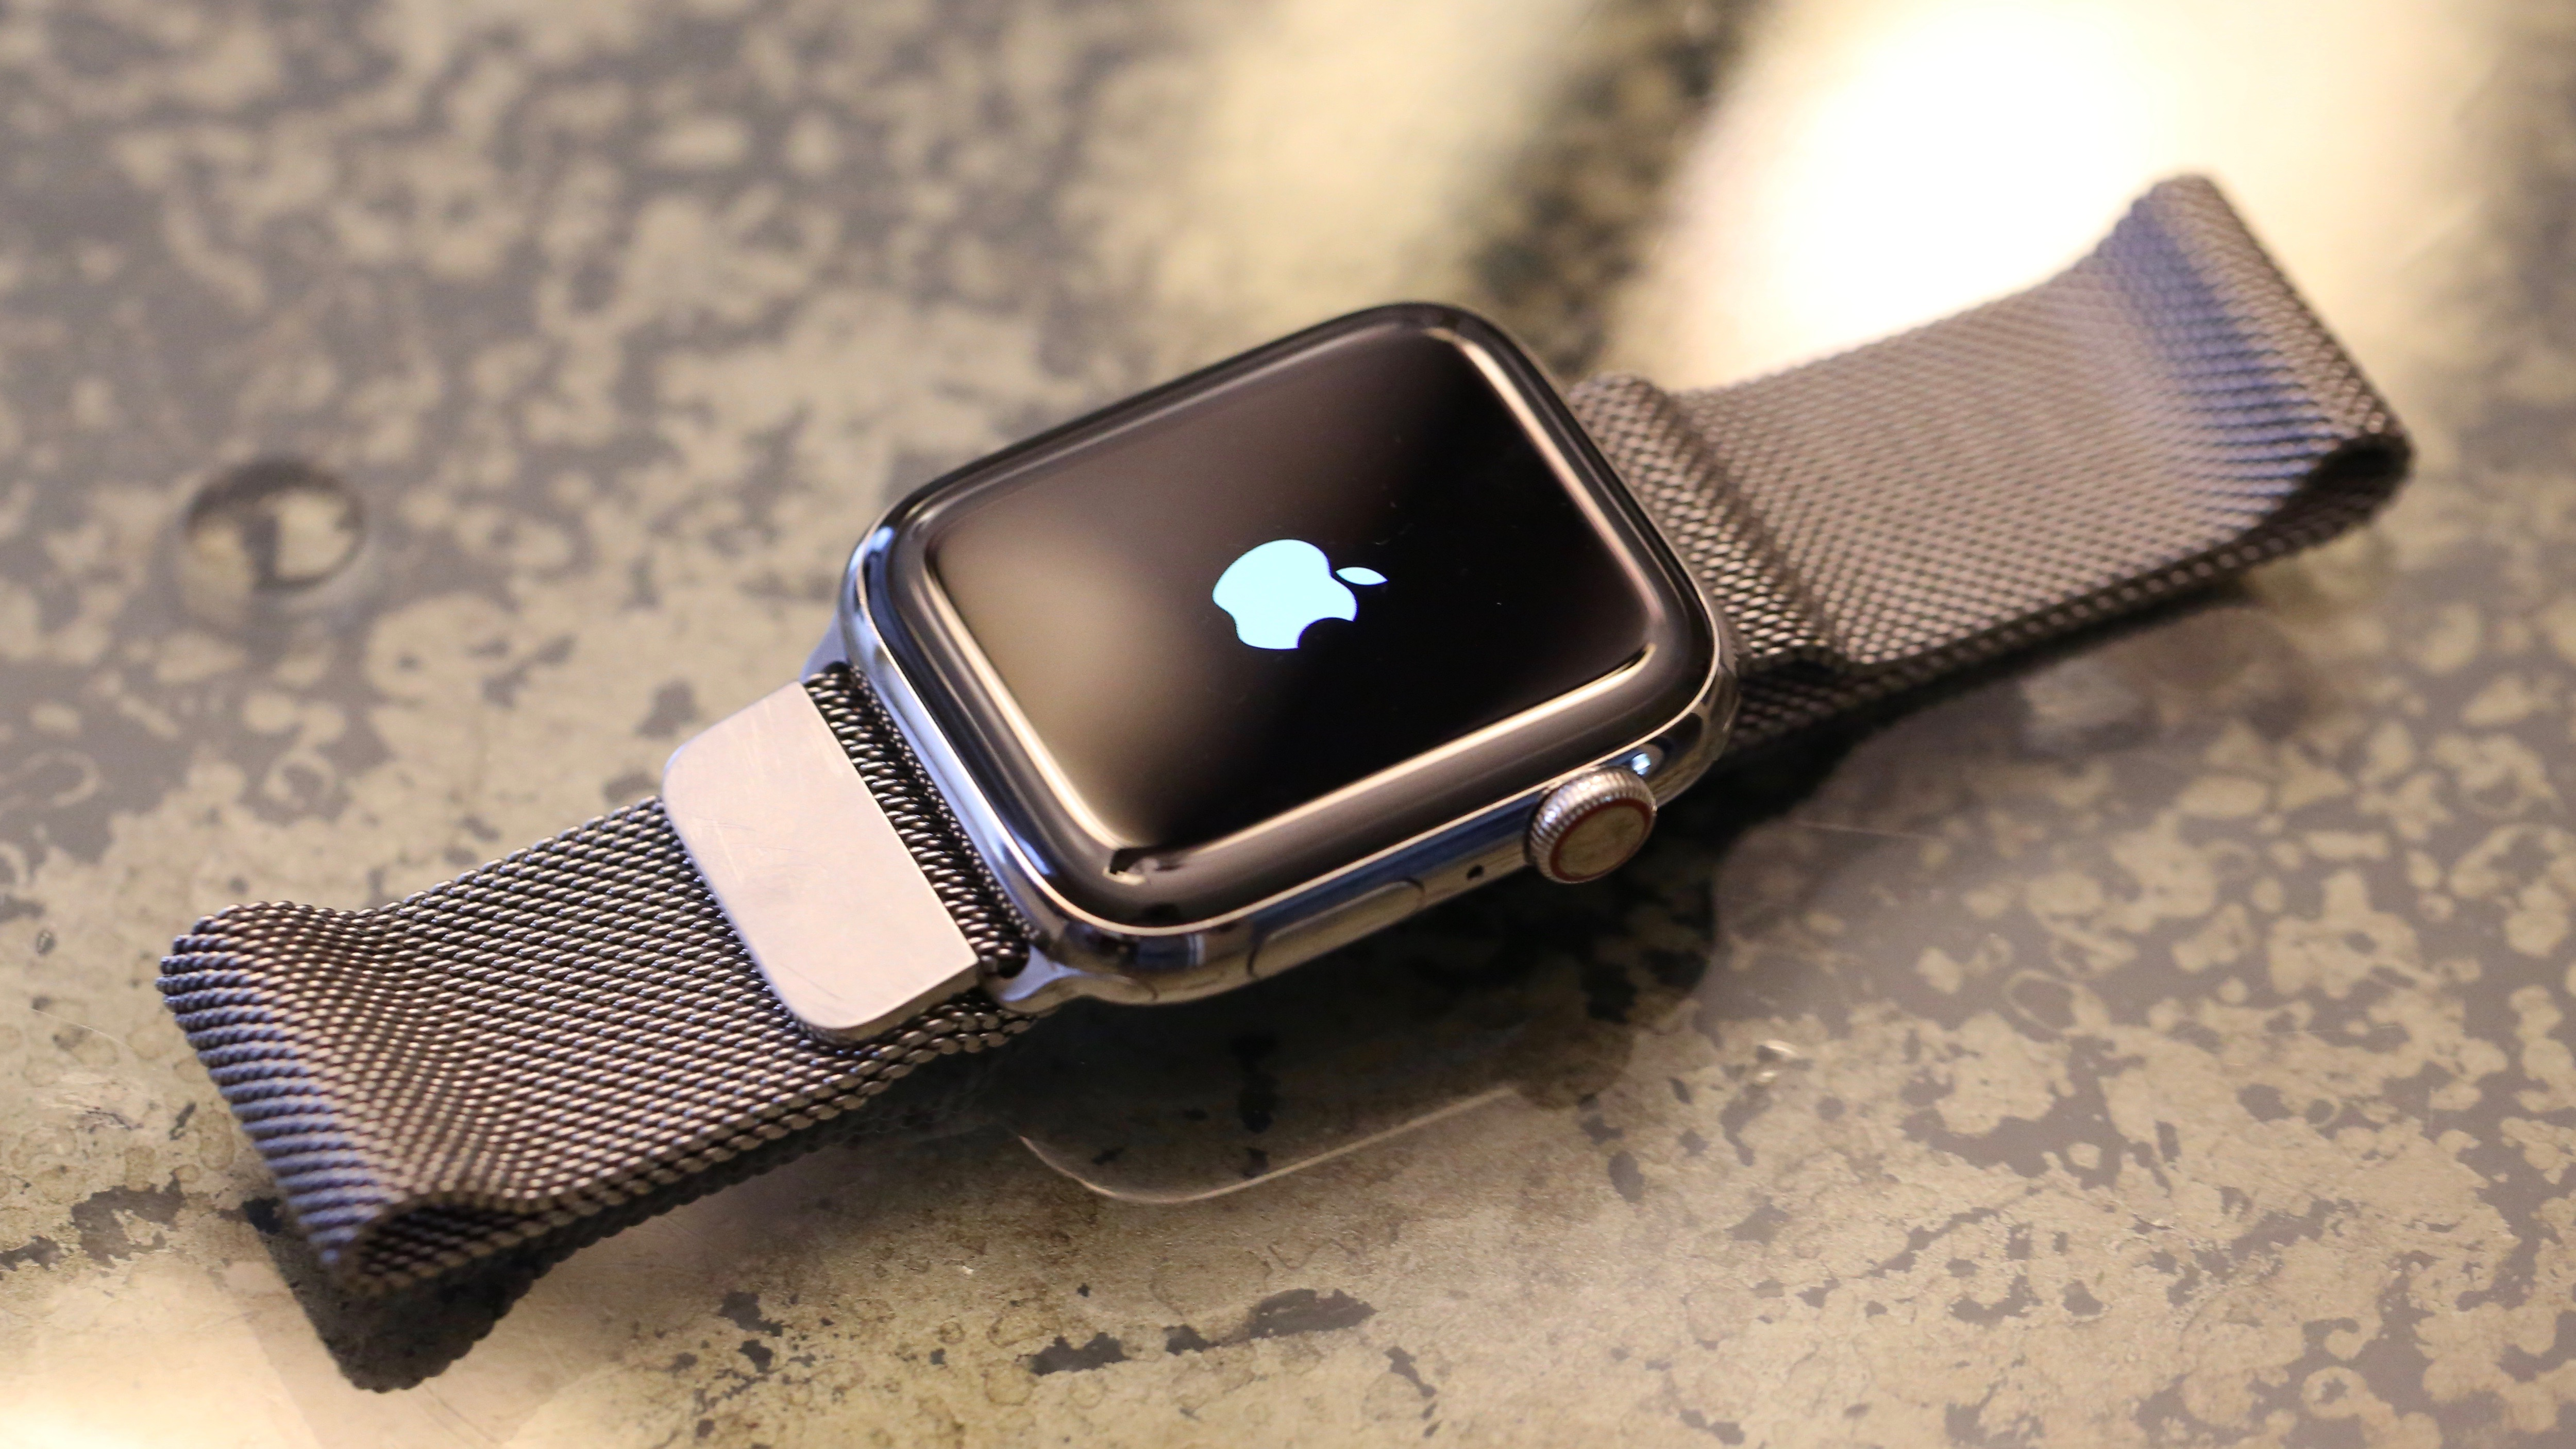 Does apple watch bluetooth to iphone 6 battery